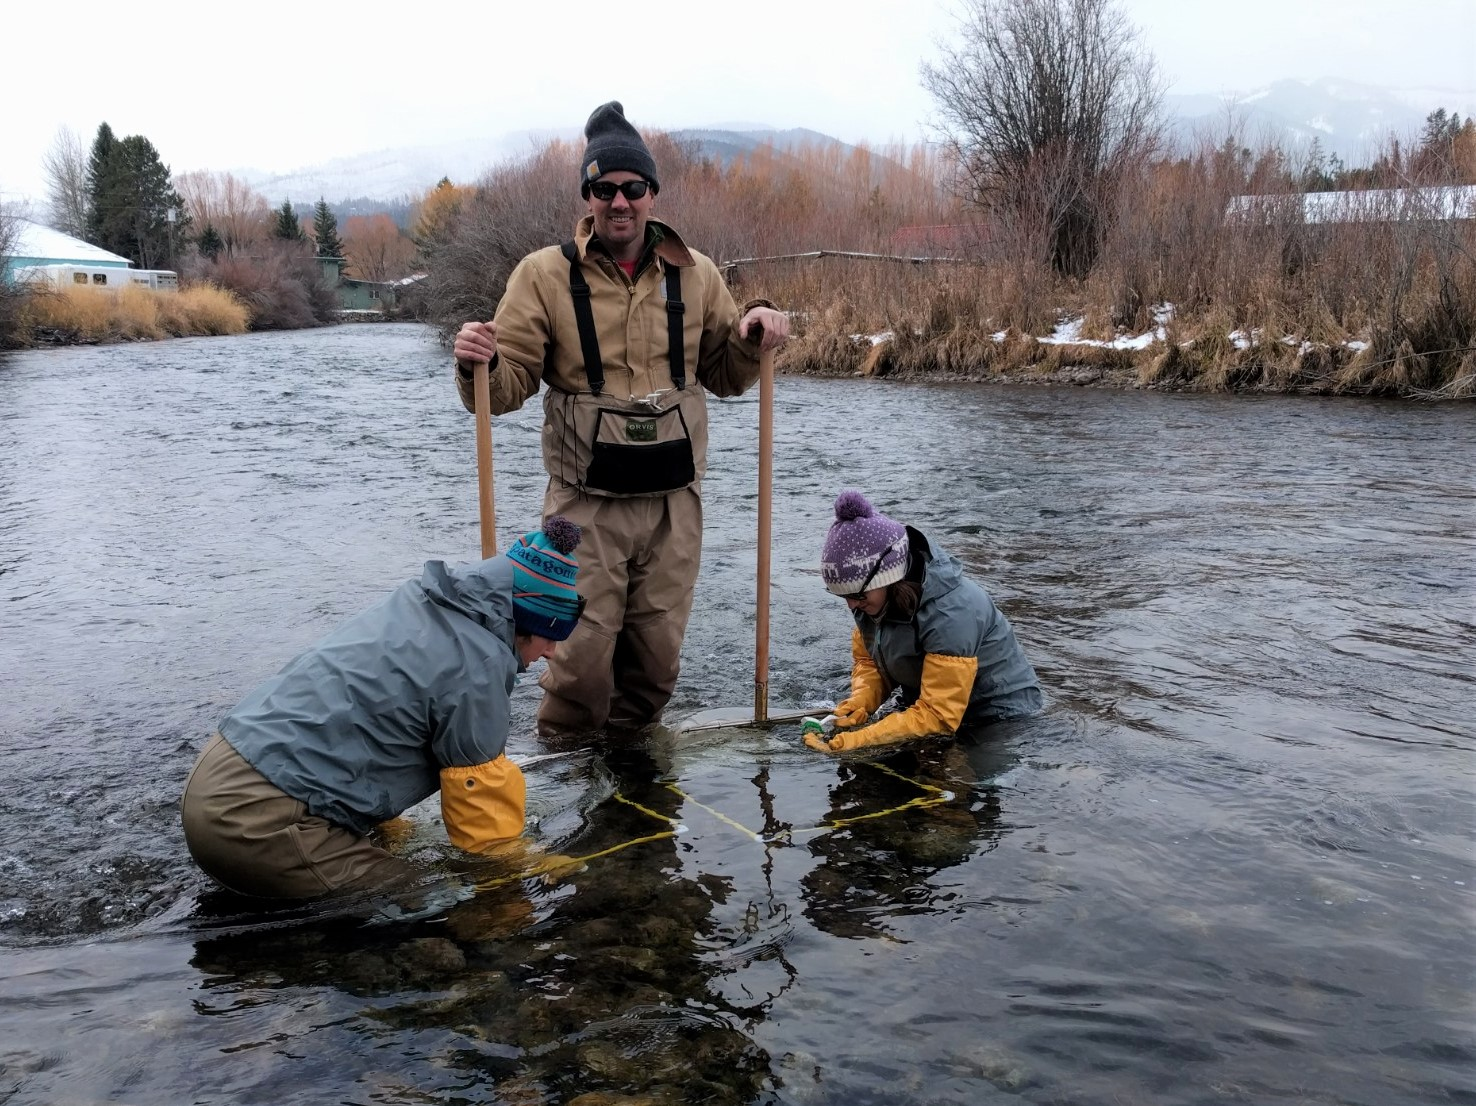 Heidi Bellorado, Brooke Stallings, and Brenner Perryman from Alder Environmental collect samples.